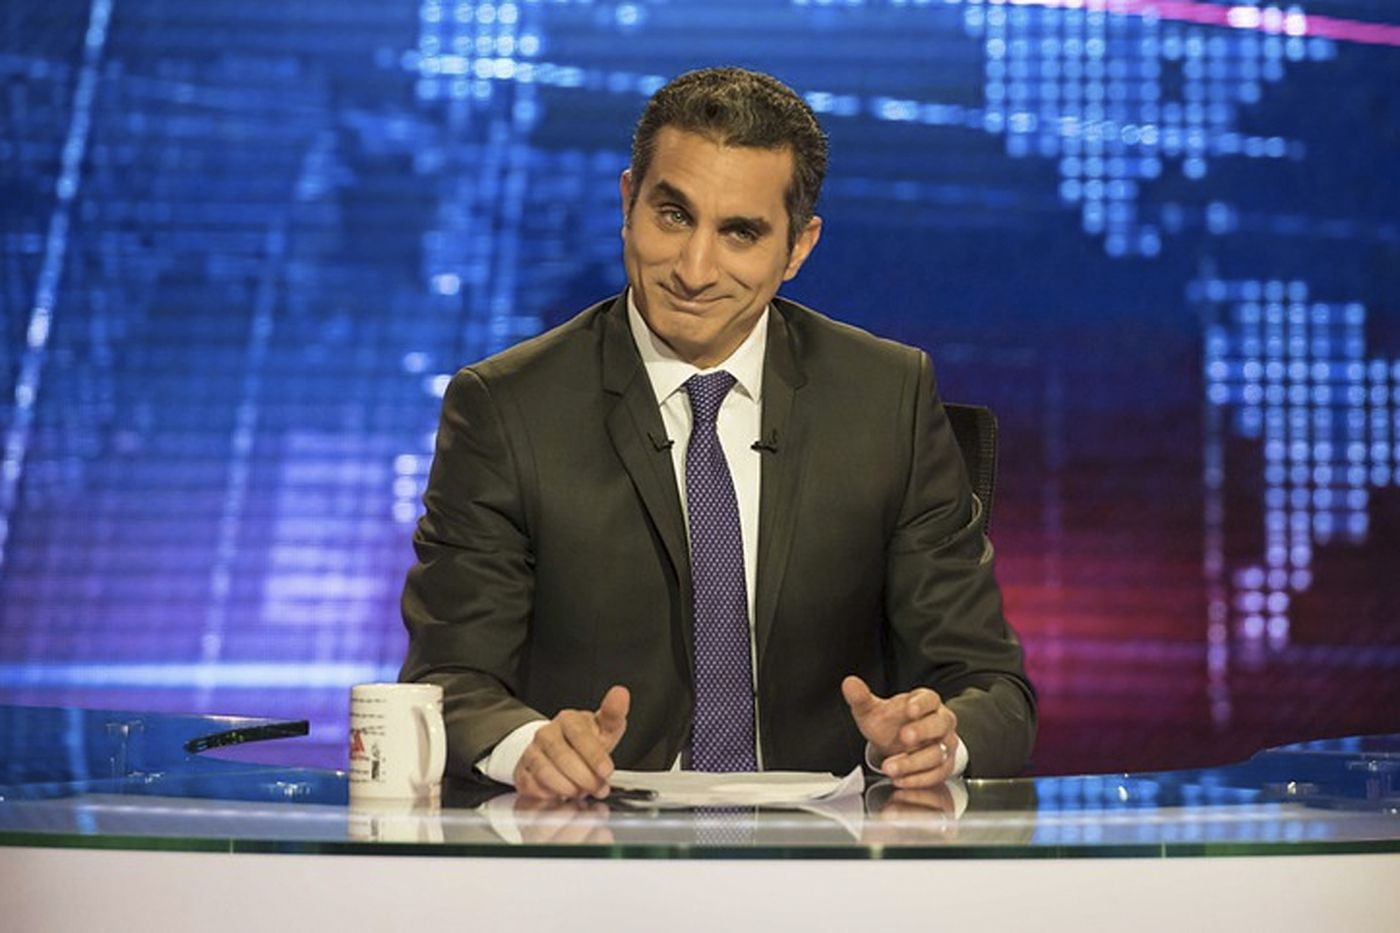 Bassem Youssef first came to Philly as a surgeon. He returns as the 'Egyptian Jon Stewart'